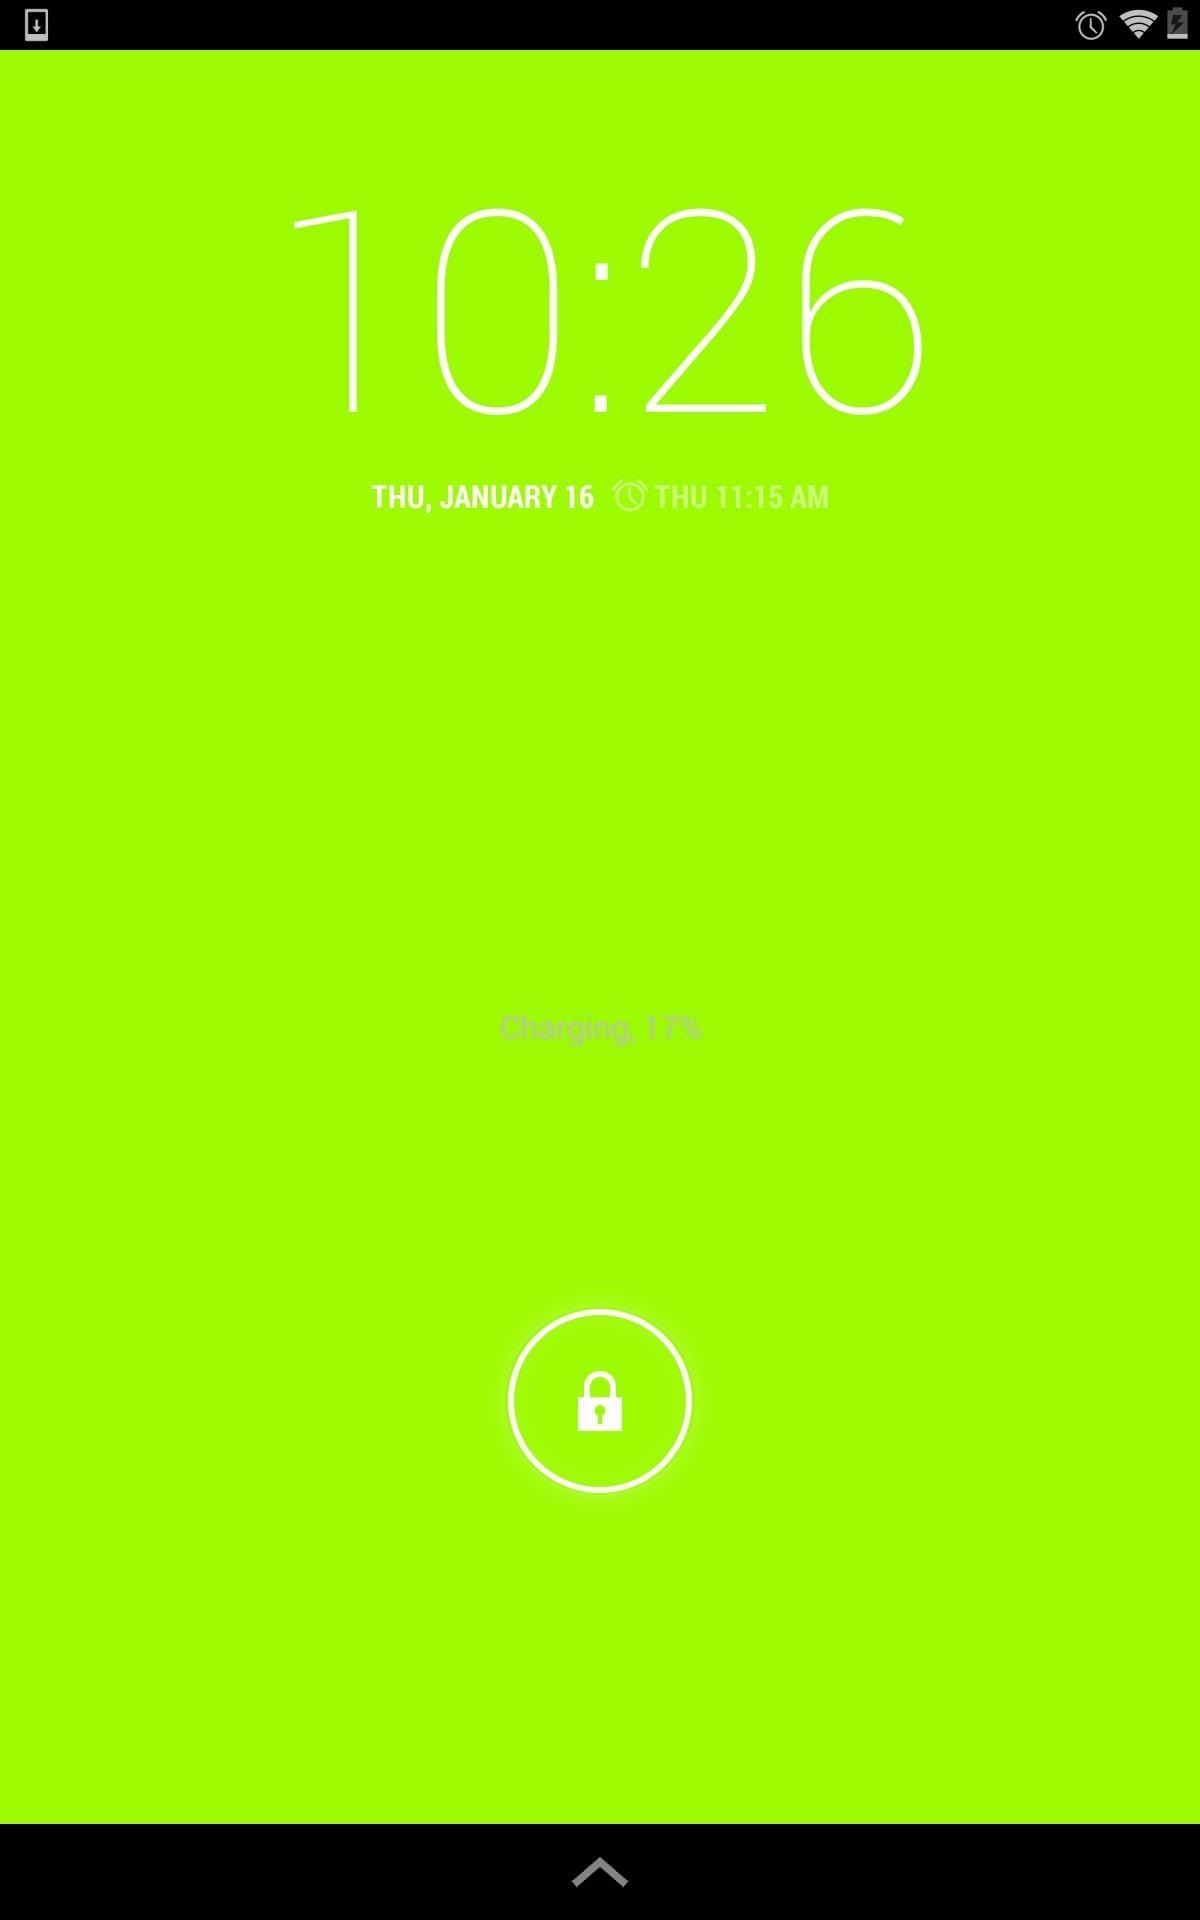 1200x1920 Enjoy your new lock screen that's tailored to specifically to your  preference. To adjust your home screen wallpaper, just change as you  normally would with ...